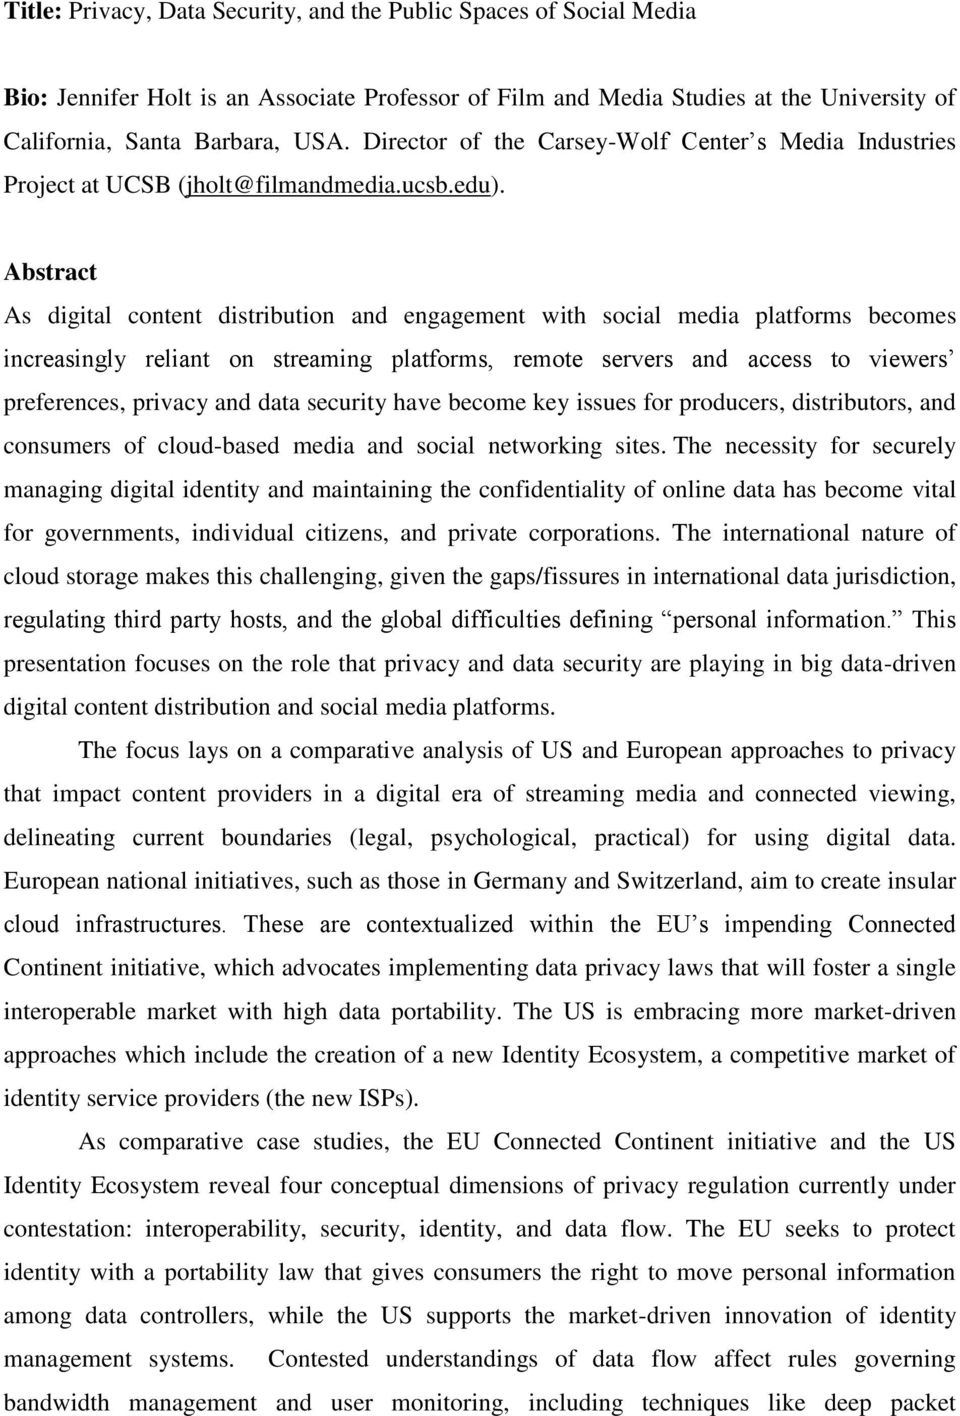 Abstract As digital content distribution and engagement with social media platforms becomes increasingly reliant on streaming platforms, remote servers and access to viewers preferences, privacy and